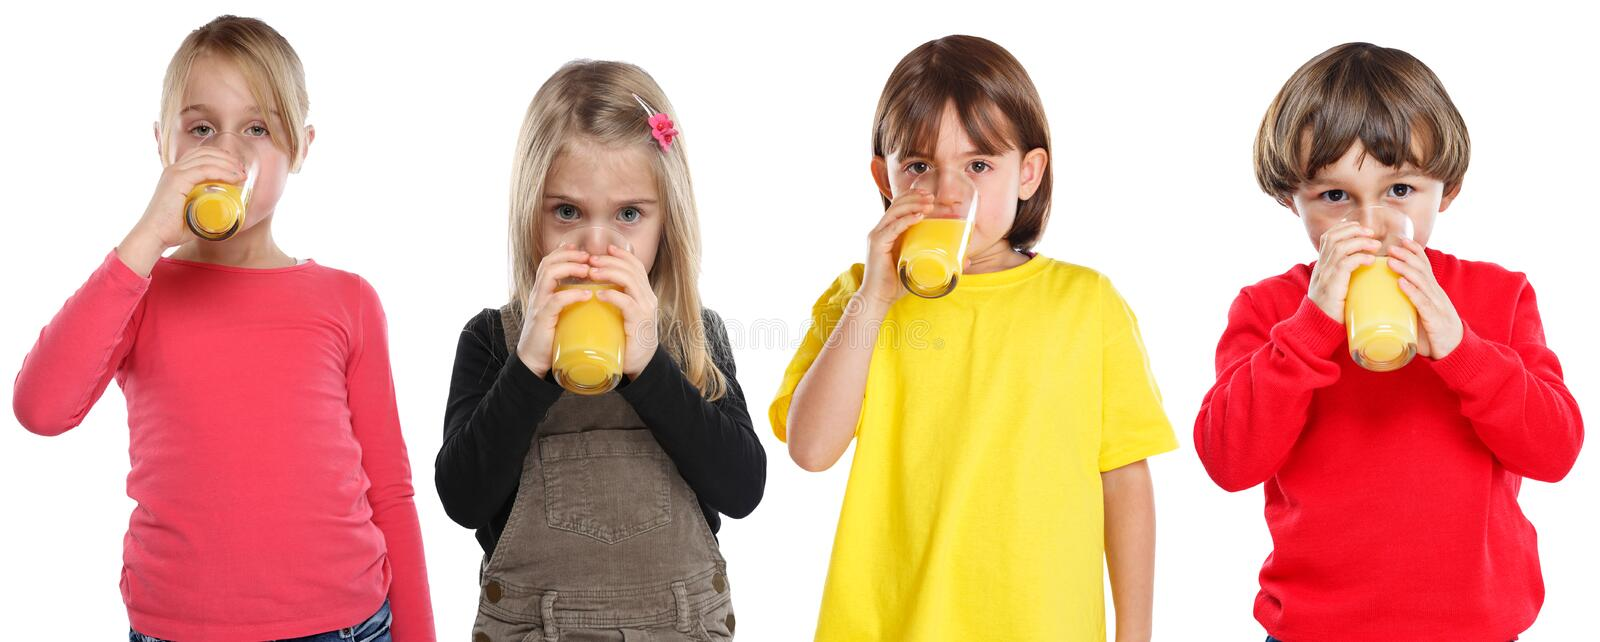 Group of children girl boy kids drinking orange juice healthy eating isolated on white. Group of children girl boy kids drinking orange juice healthy eating stock images